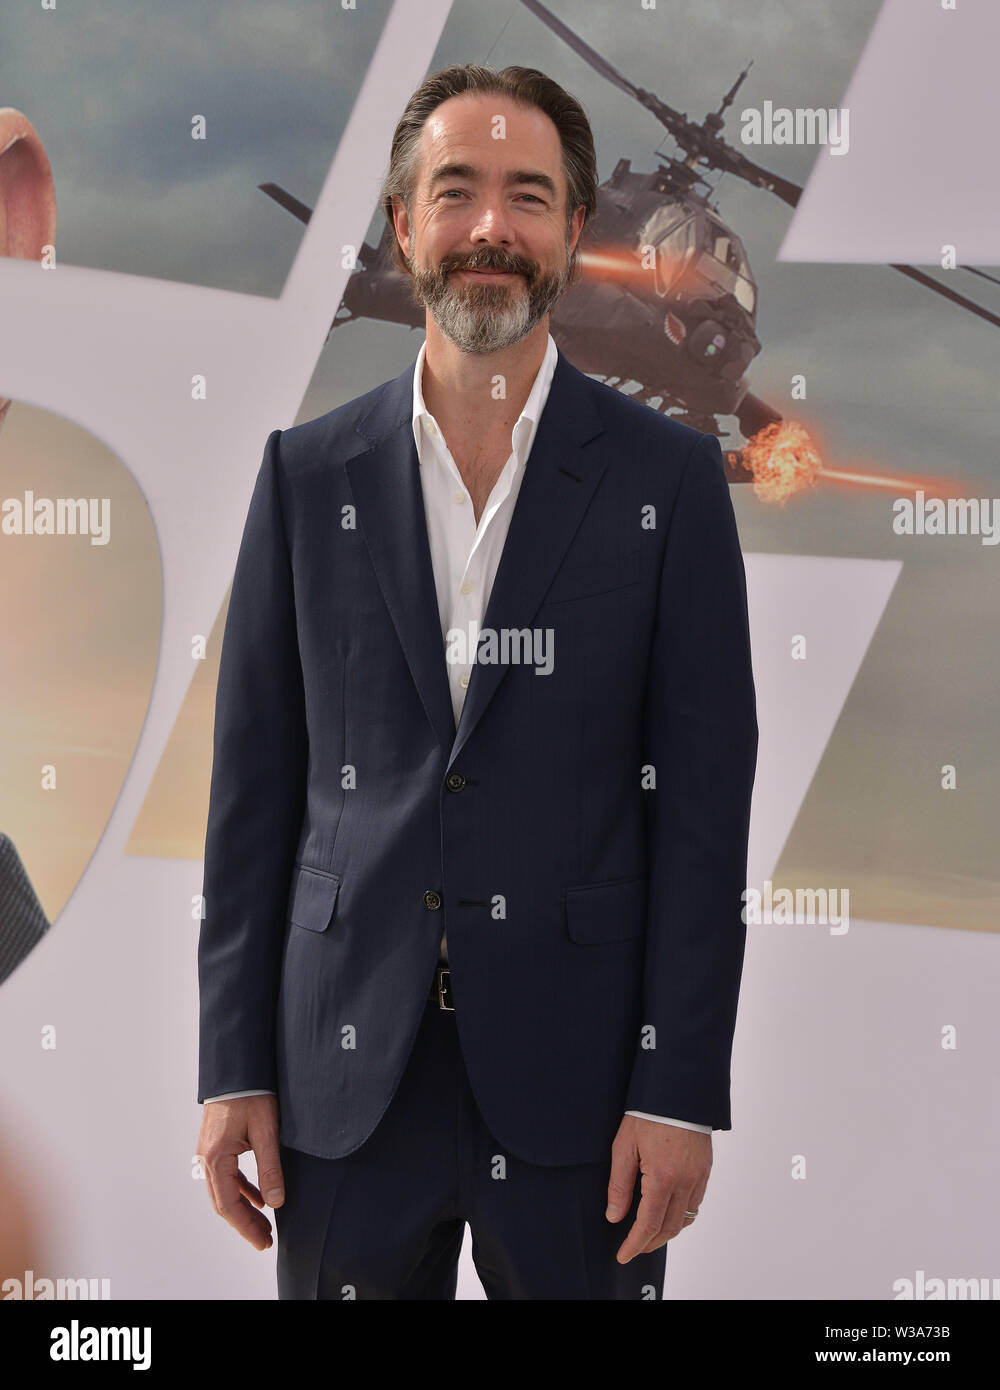 """Los Angeles, USA. 13th July, 2019. Chris Morgan arrives at the Premiere Of Universal Pictures' """"Fast & Furious Presents Hobbs & Shaw"""" at Dolby Theatre on July 13, 2019 in Hollywood, California Credit: Tsuni/USA/Alamy Live News Stock Photo"""